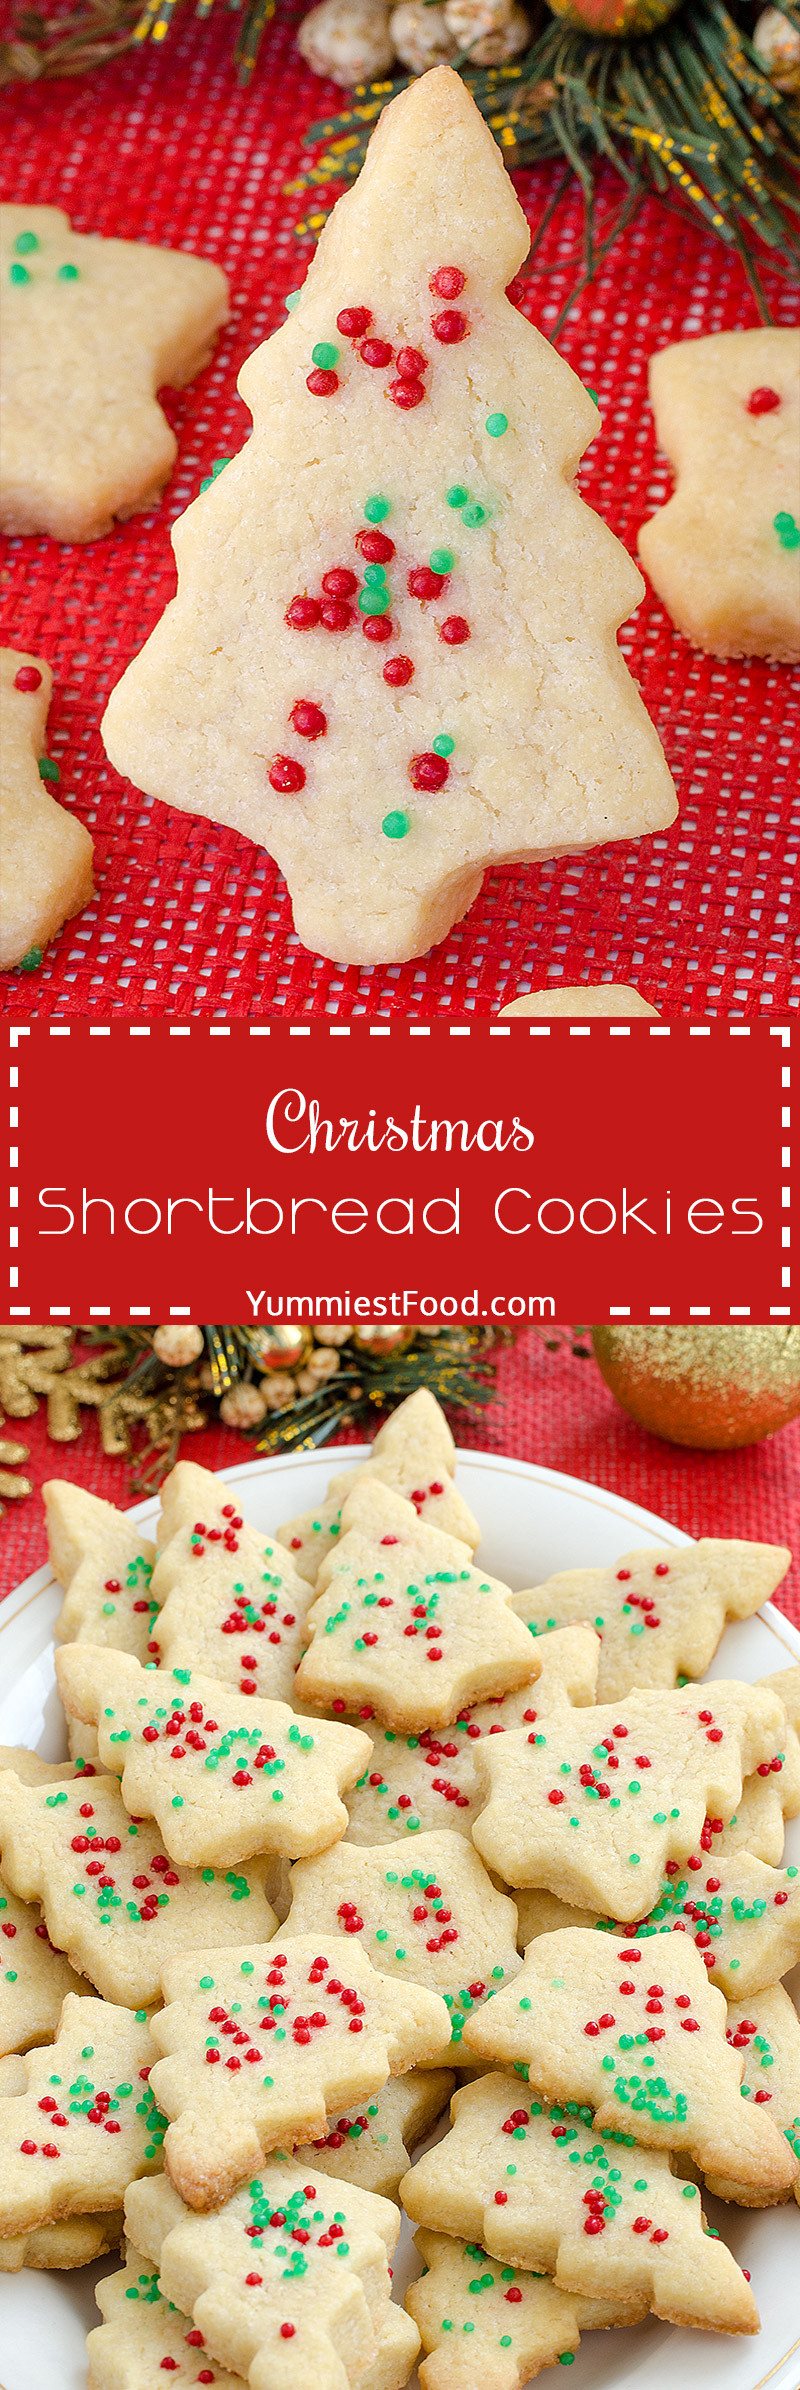 Christmas Shortbread Cookies Recipe  Christmas Shortbread Cookies Recipe from Yummiest Food